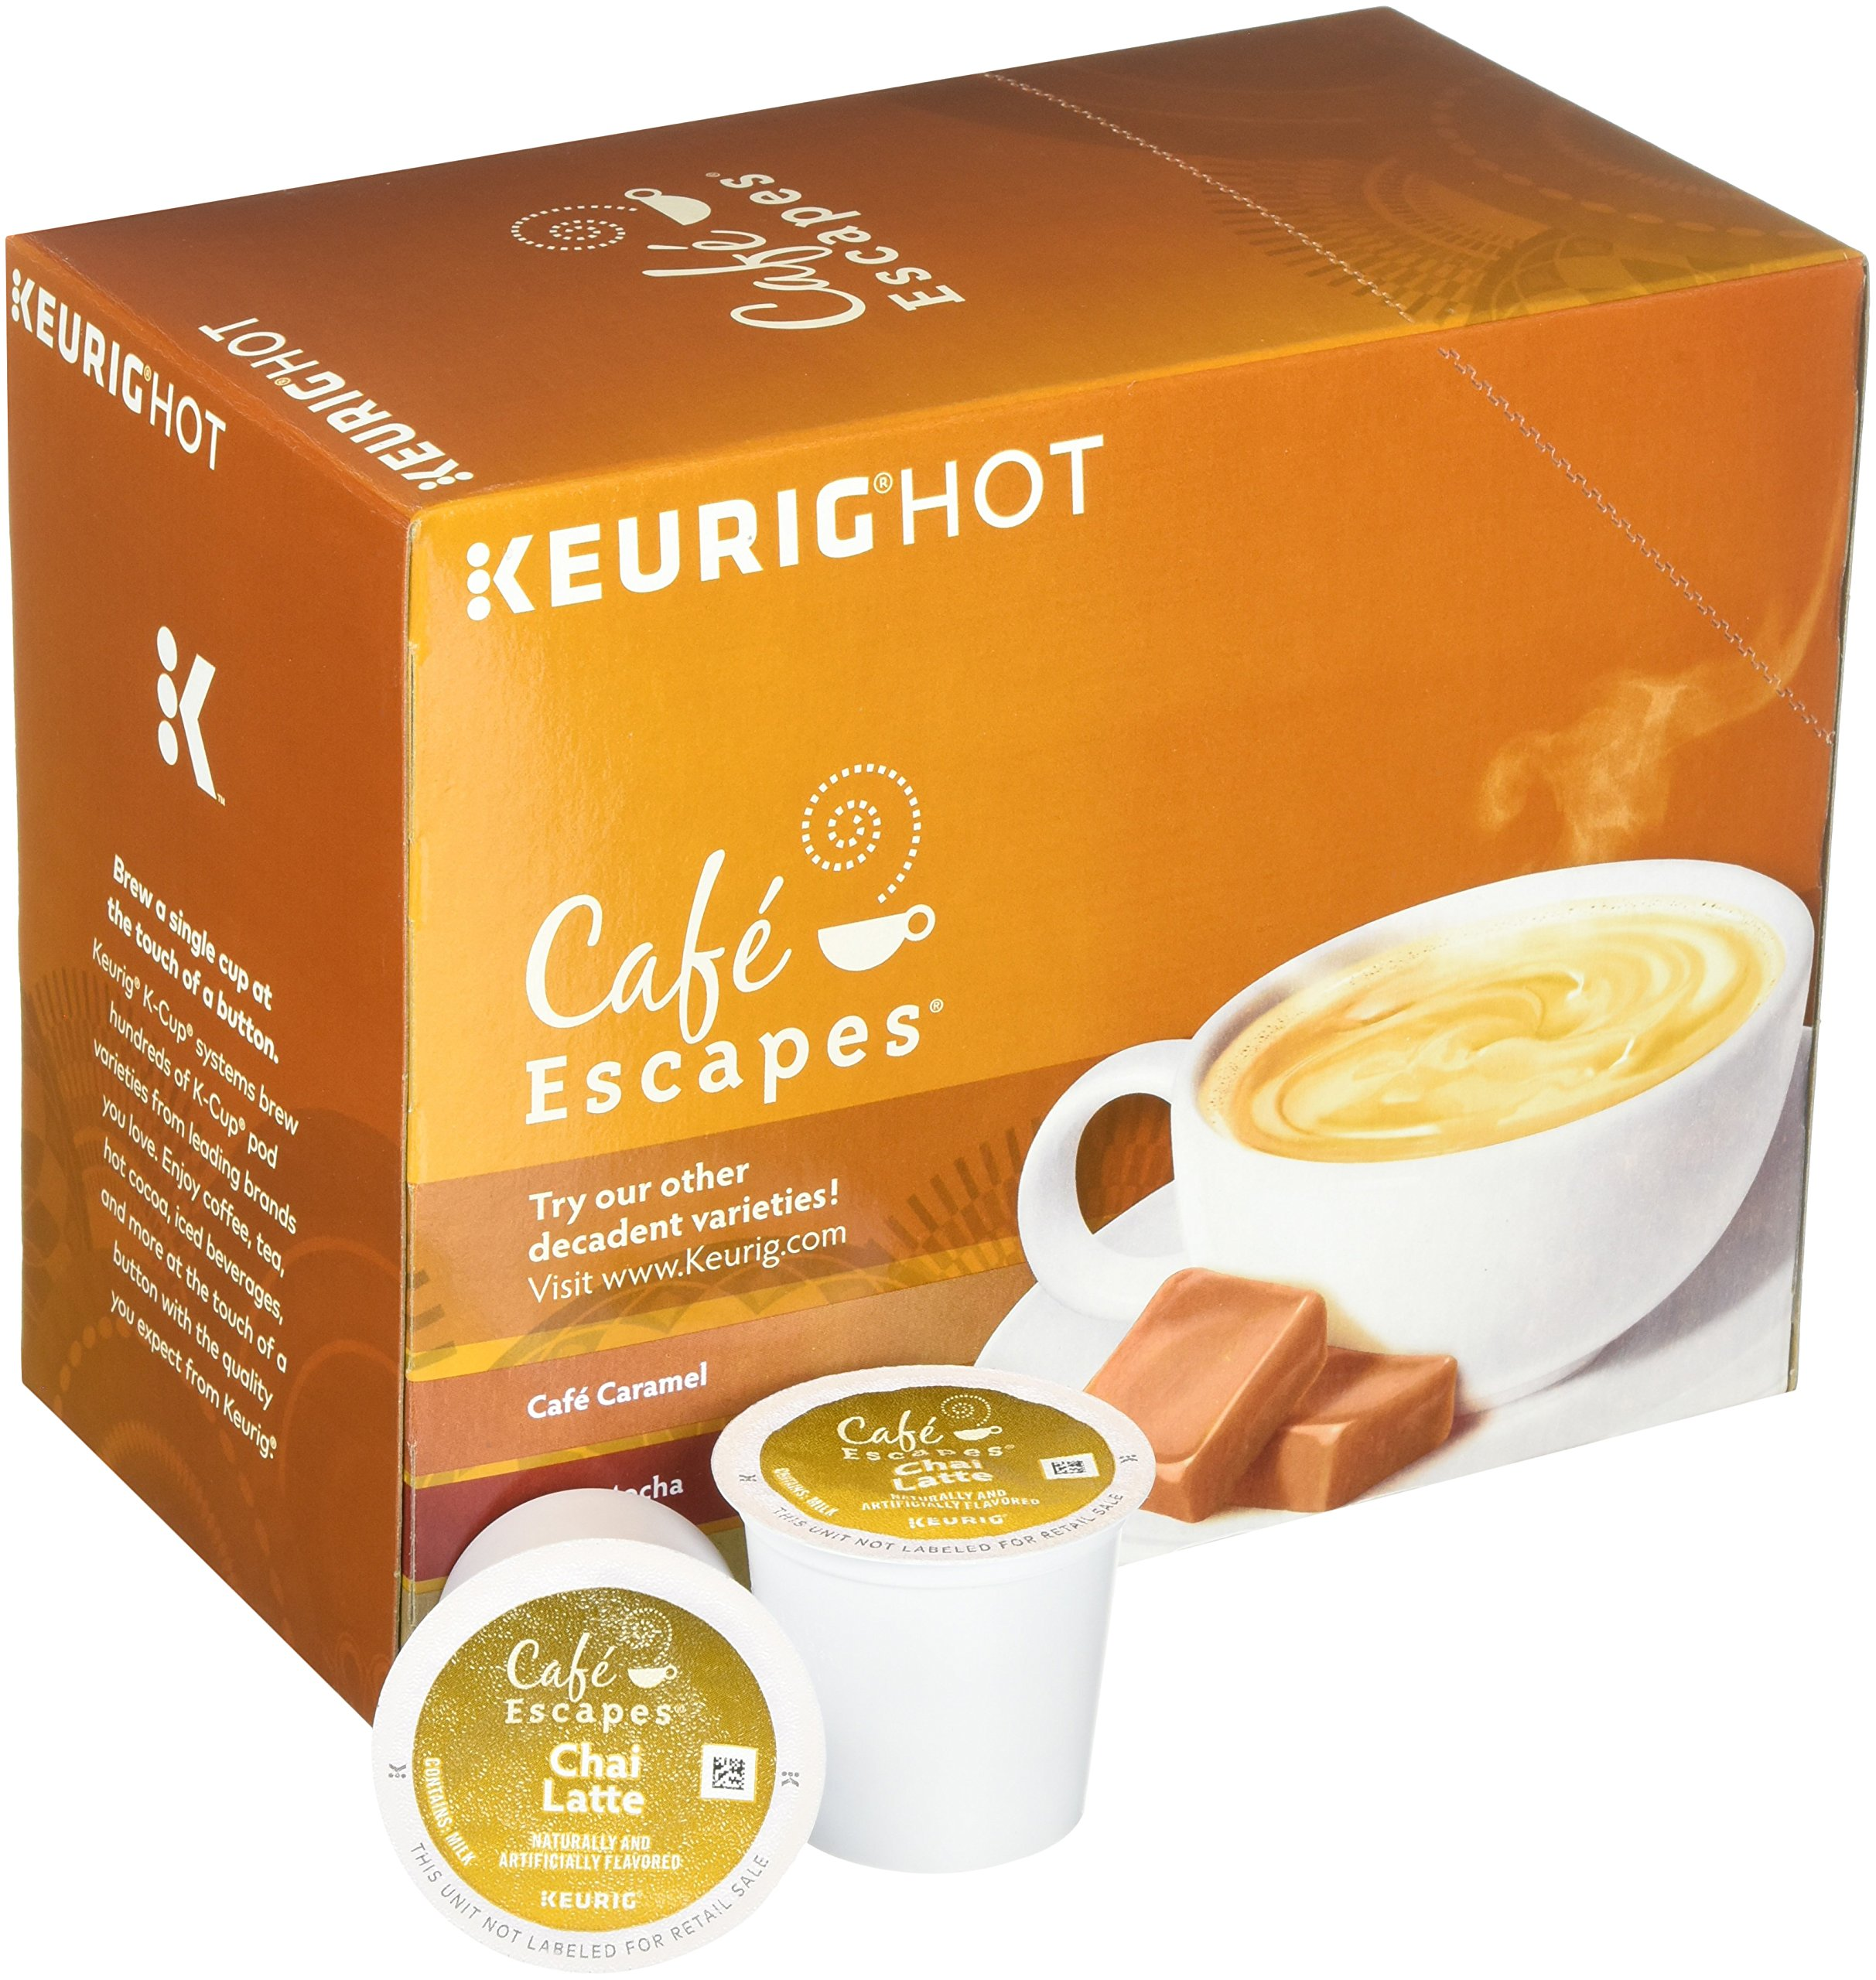 Cafe Escapes Chai Latte K-Cups, 11.7 oz, 96 Count by Café Escapes (Image #4)